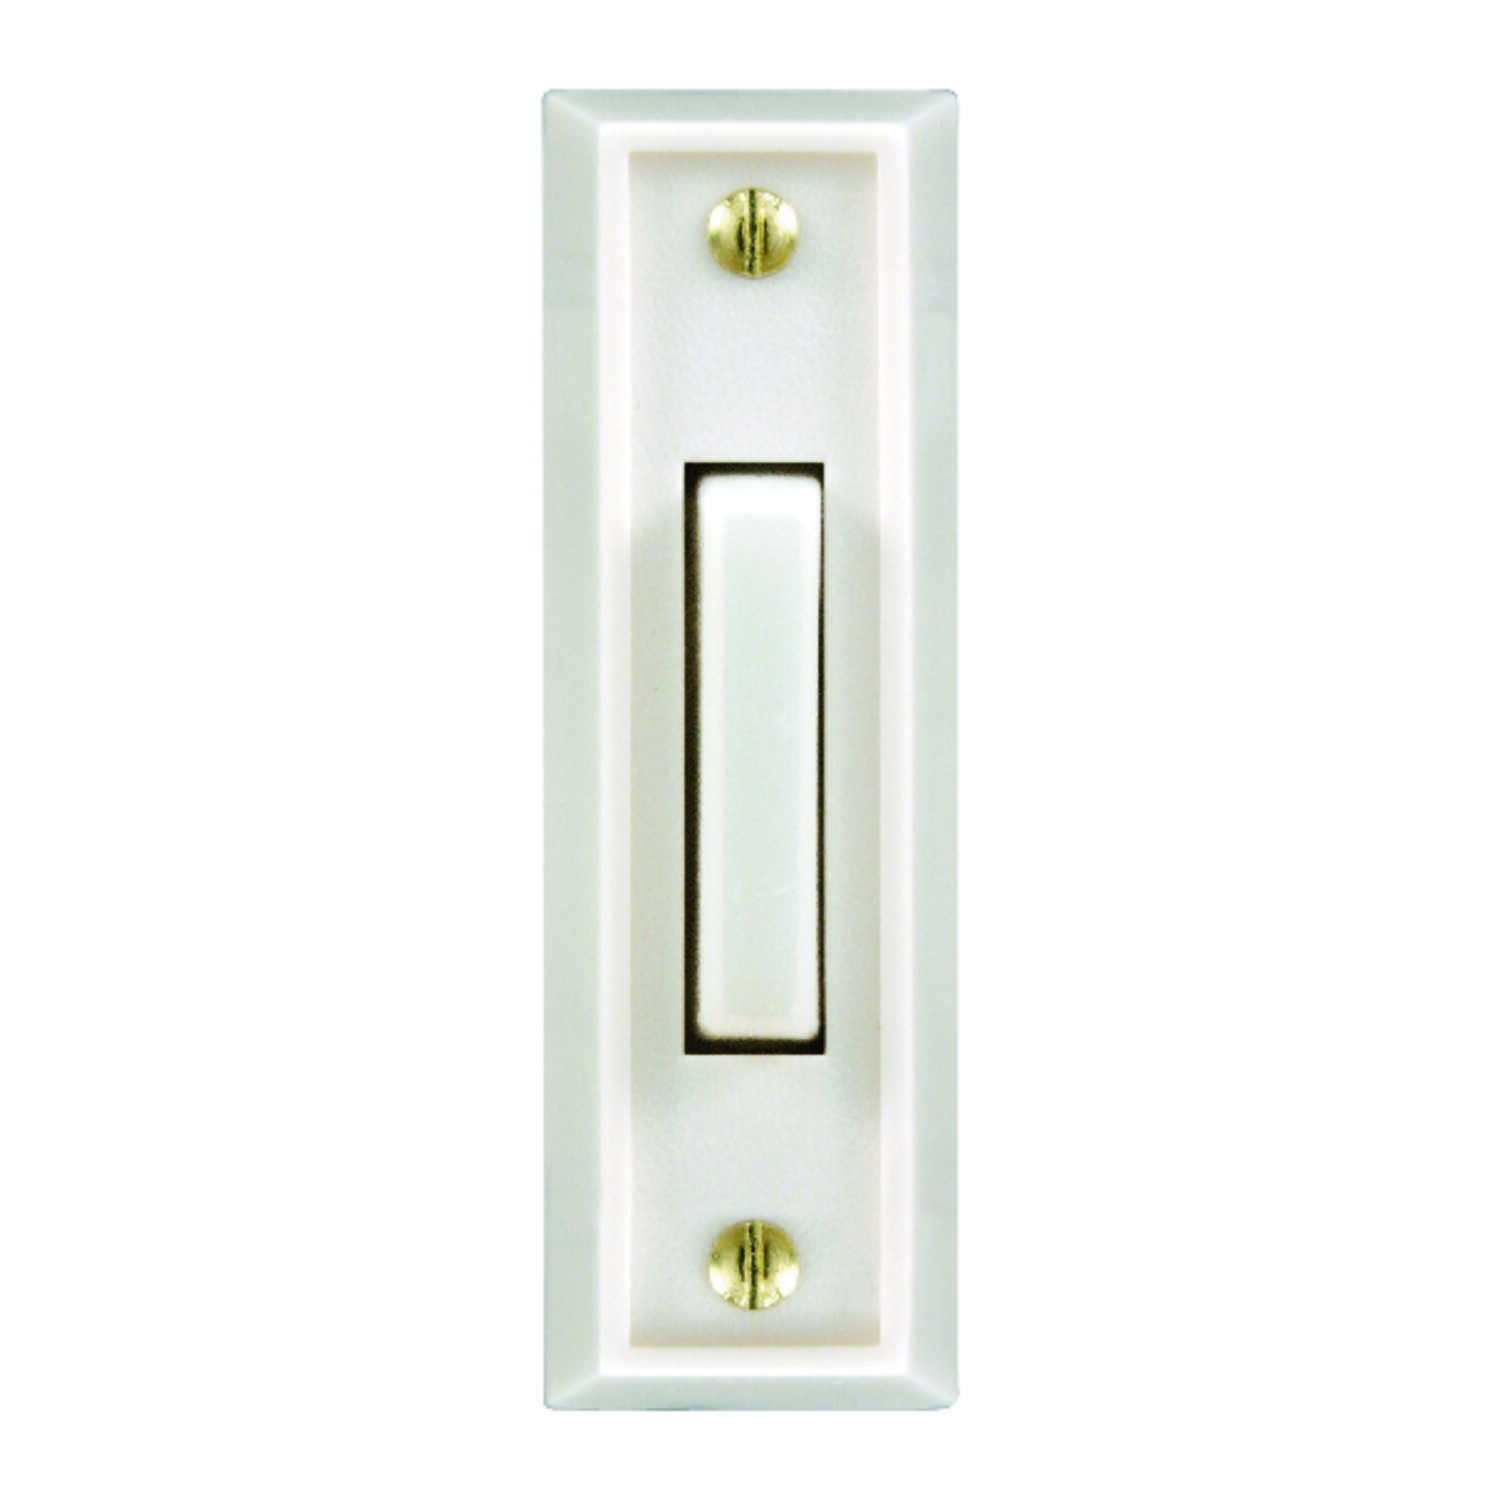 Heath Zenith  Plastic  Wired  Pushbutton Doorbell